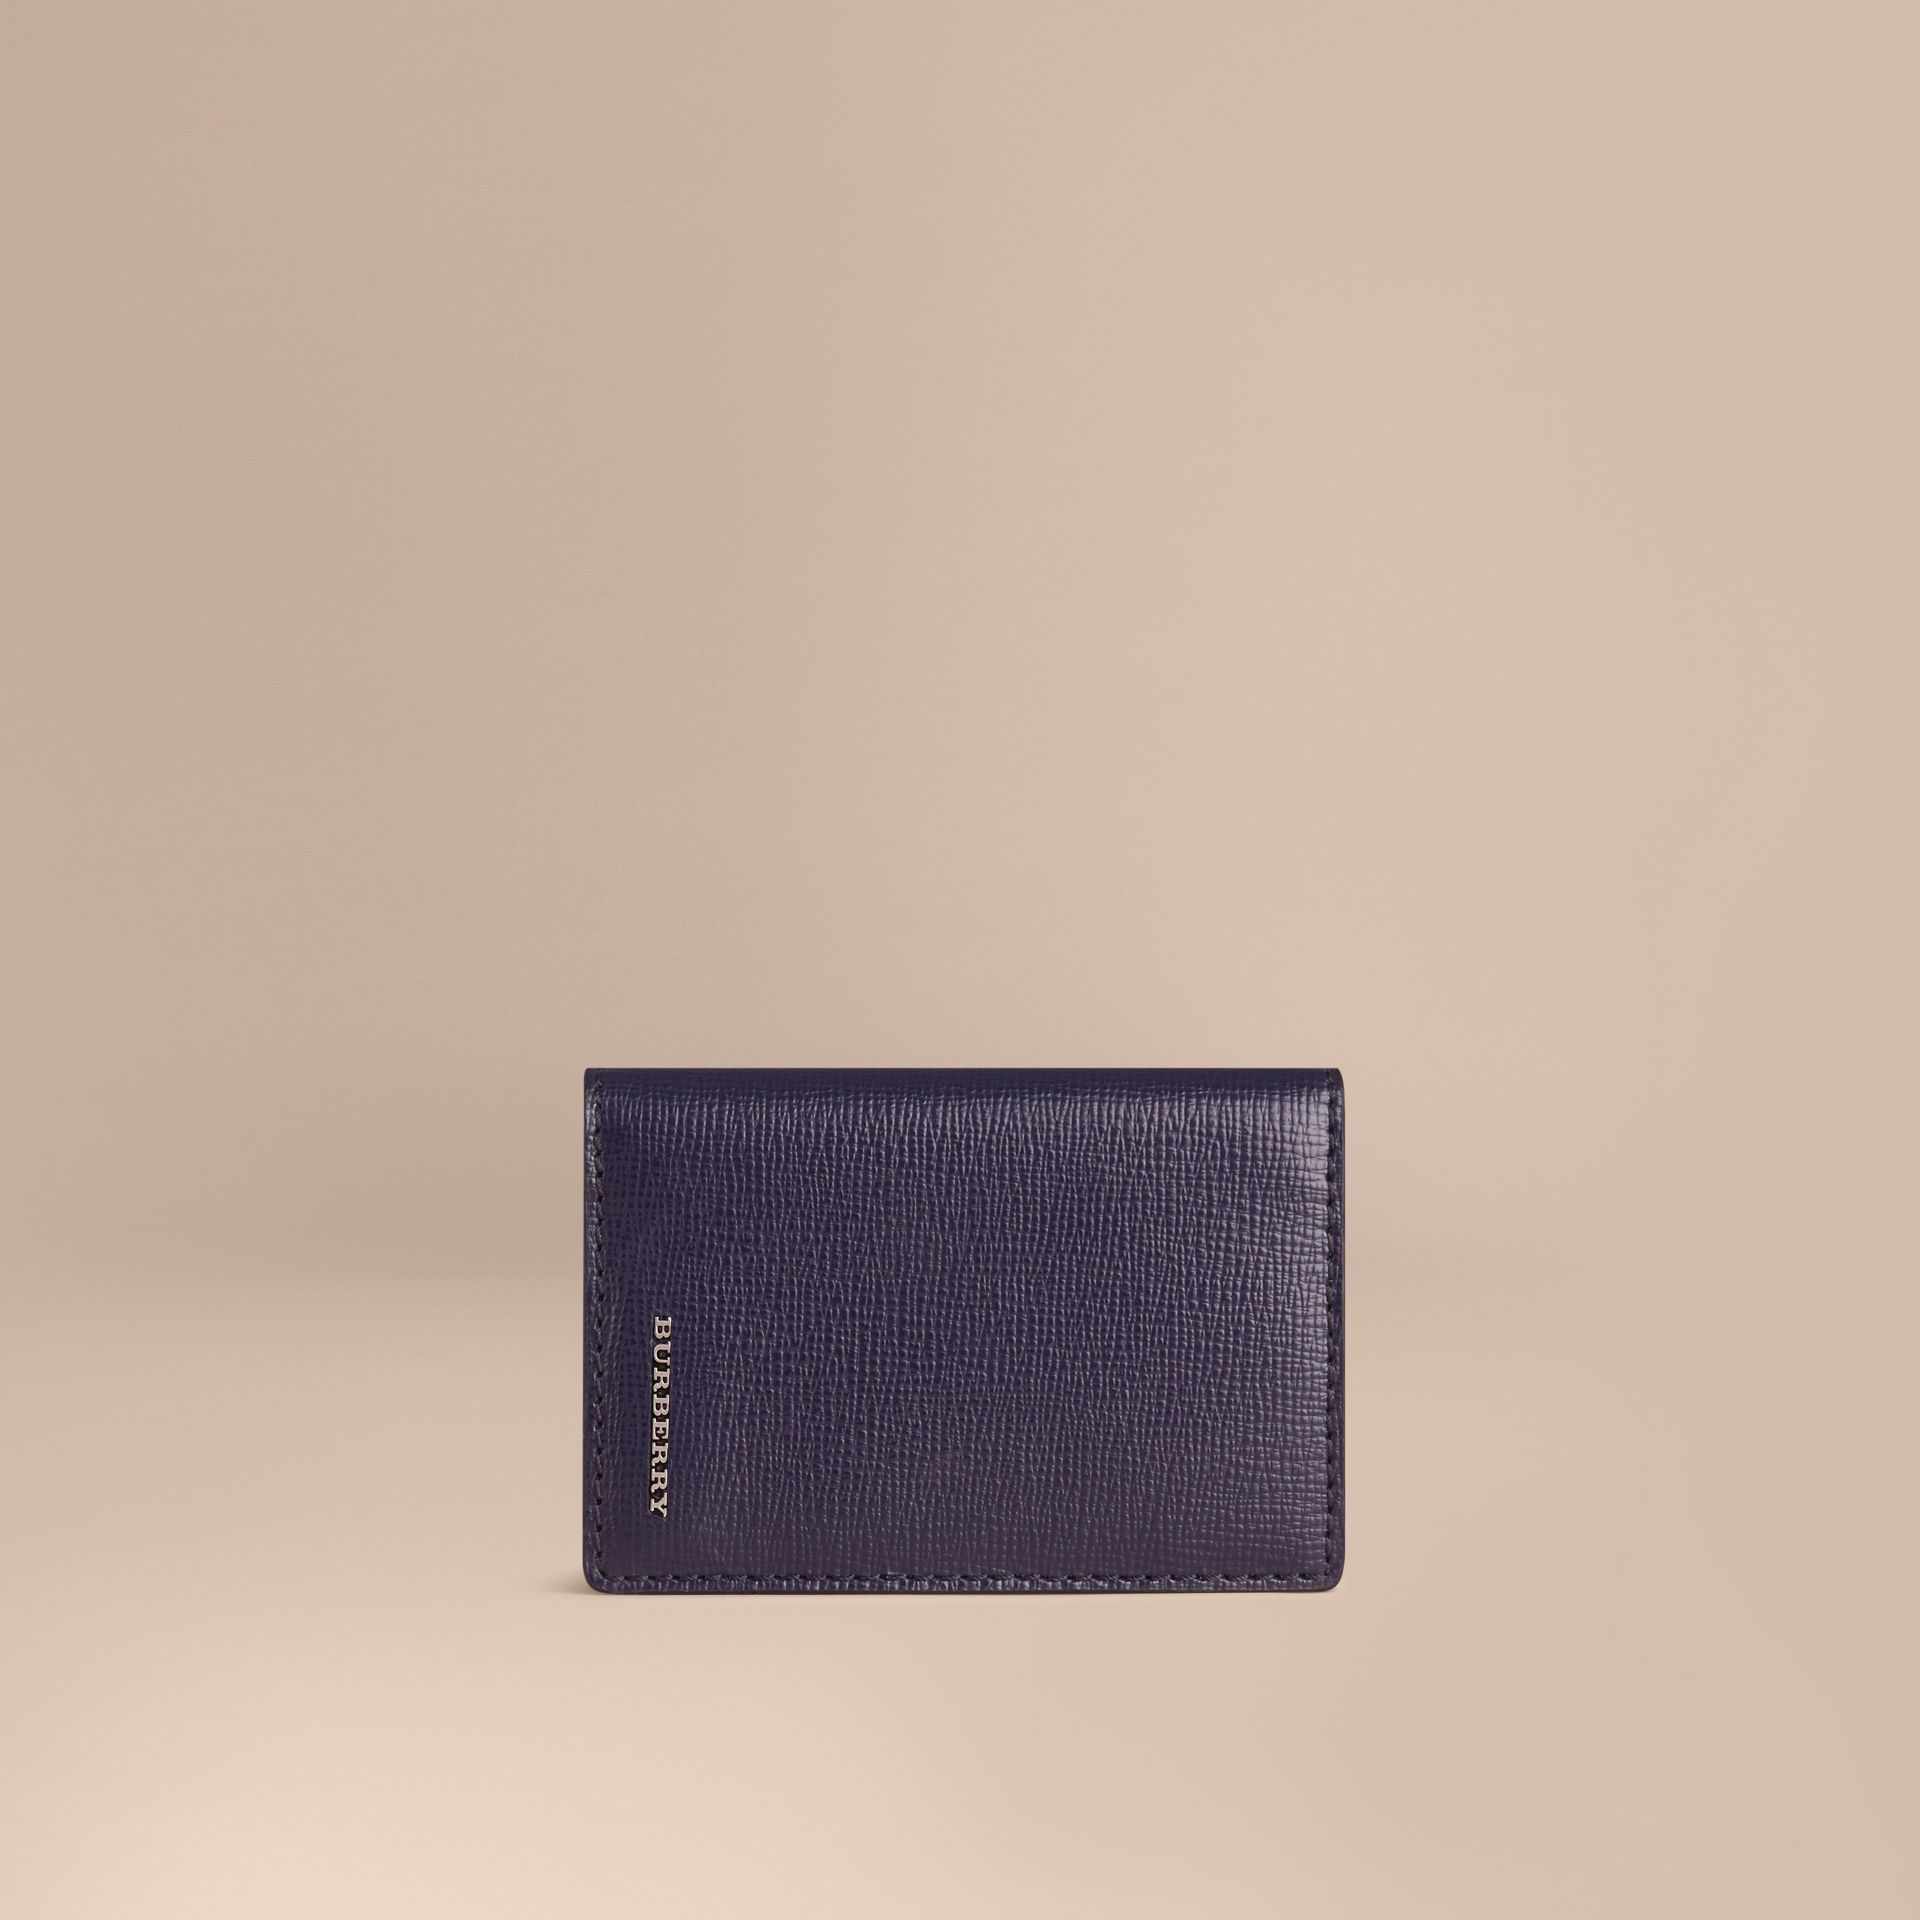 London Leather Folding Card Case in Dark Navy - gallery image 1